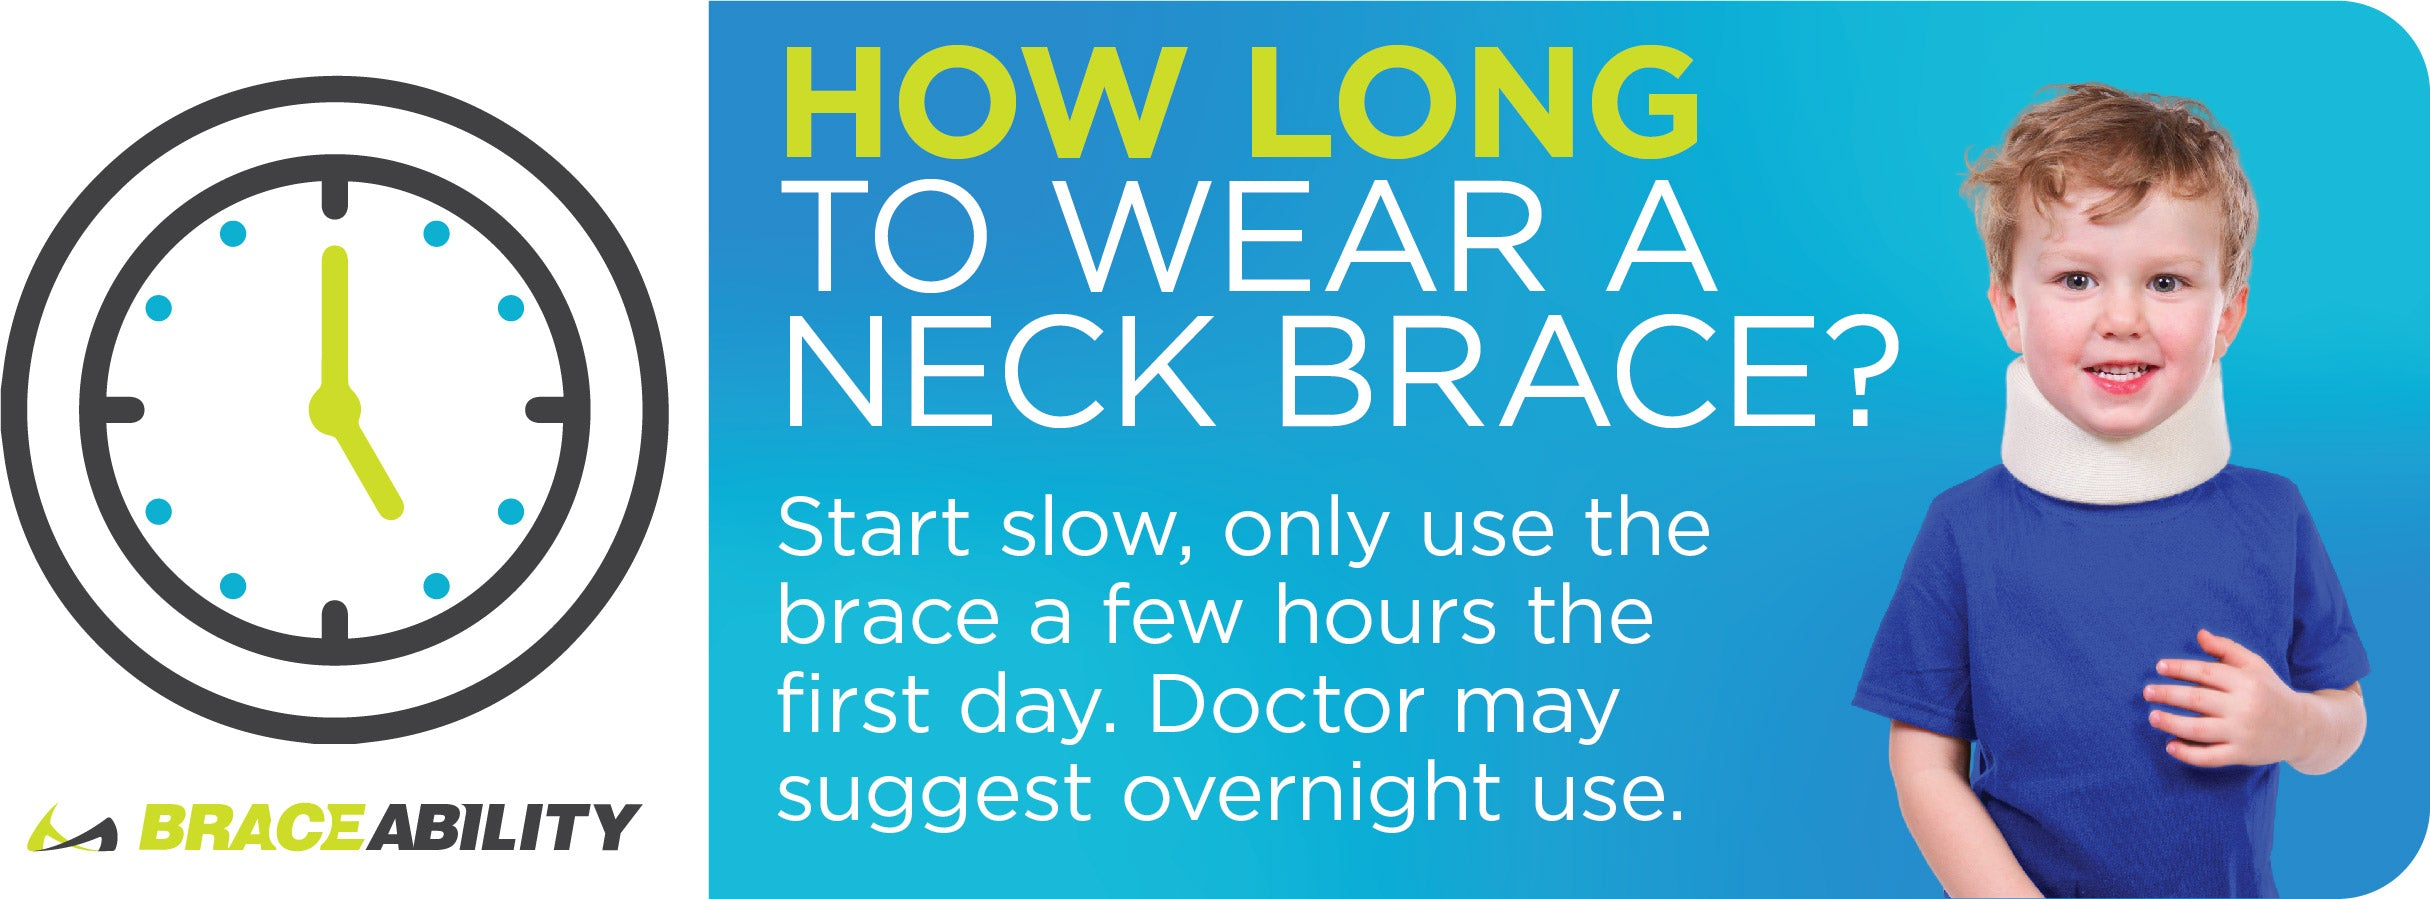 Start slow when wearing a neck brace. Wear for a few hours a day. Doctors may suggest wearing overnight.